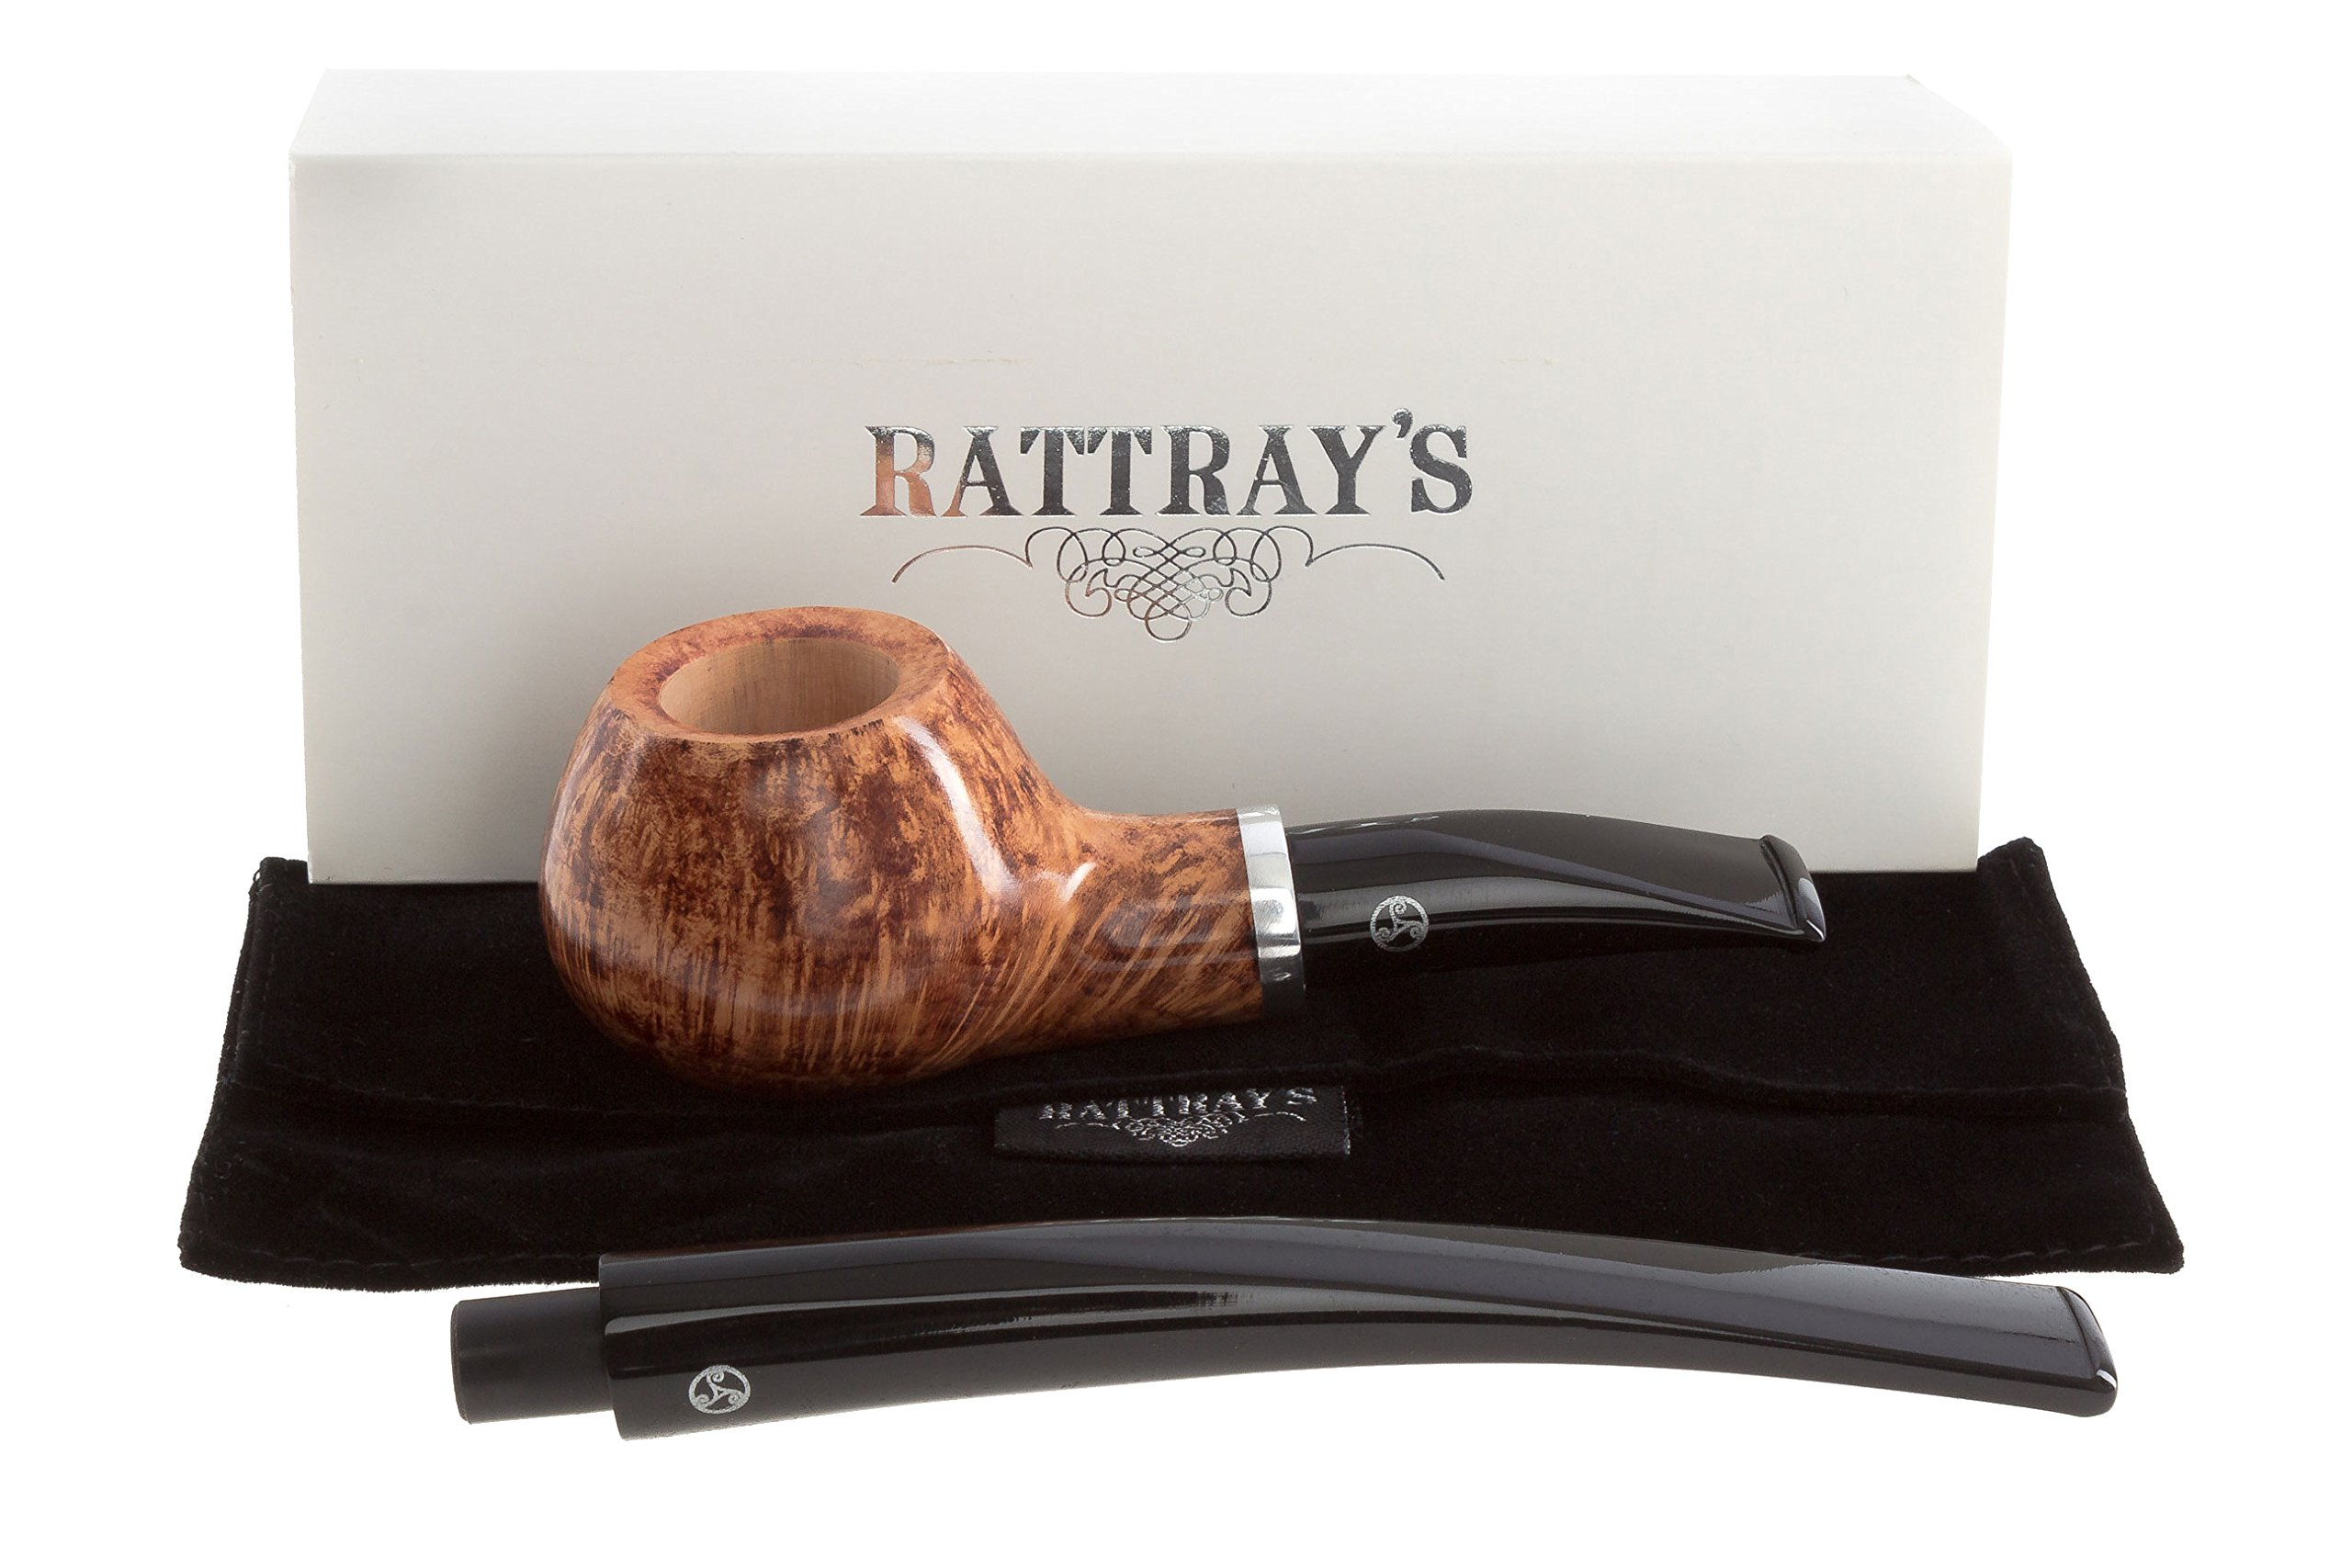 Rattray's Butcher's Boy 22 Tobacco Pipe - Natural by Rattray's (Image #7)